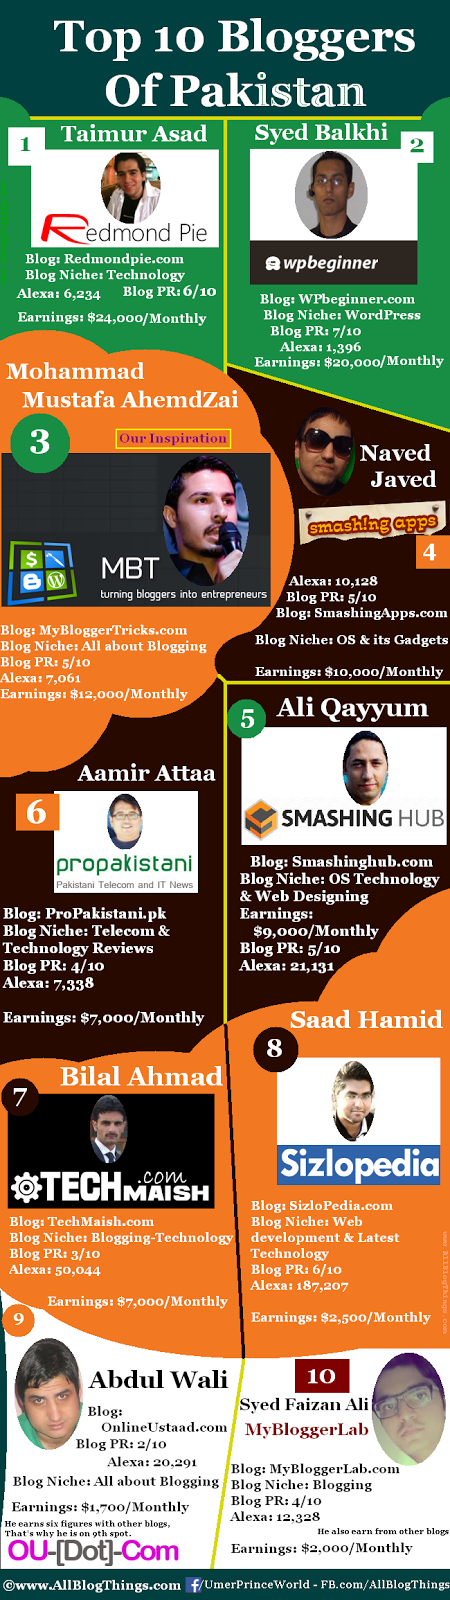 Top 10 Bloggers Of Pakistan In 2016 - Infographic